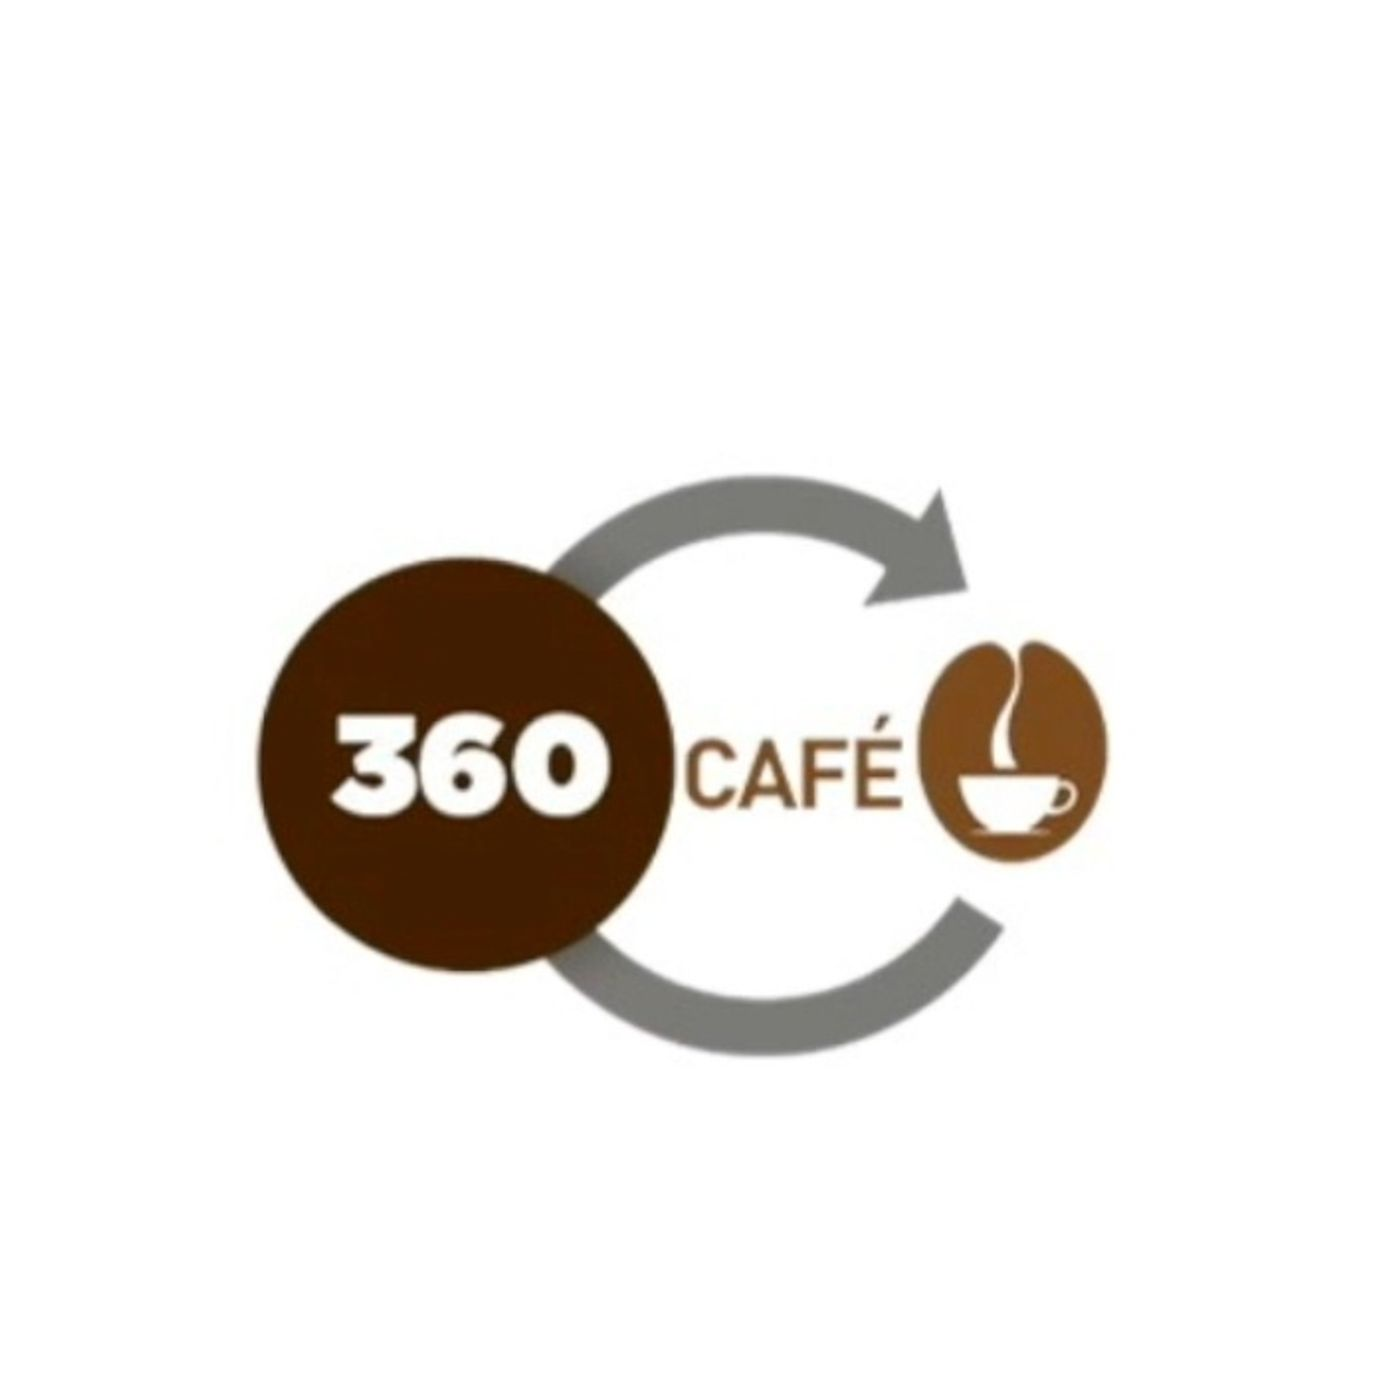 360 Cafe - Action Learning - parte 2